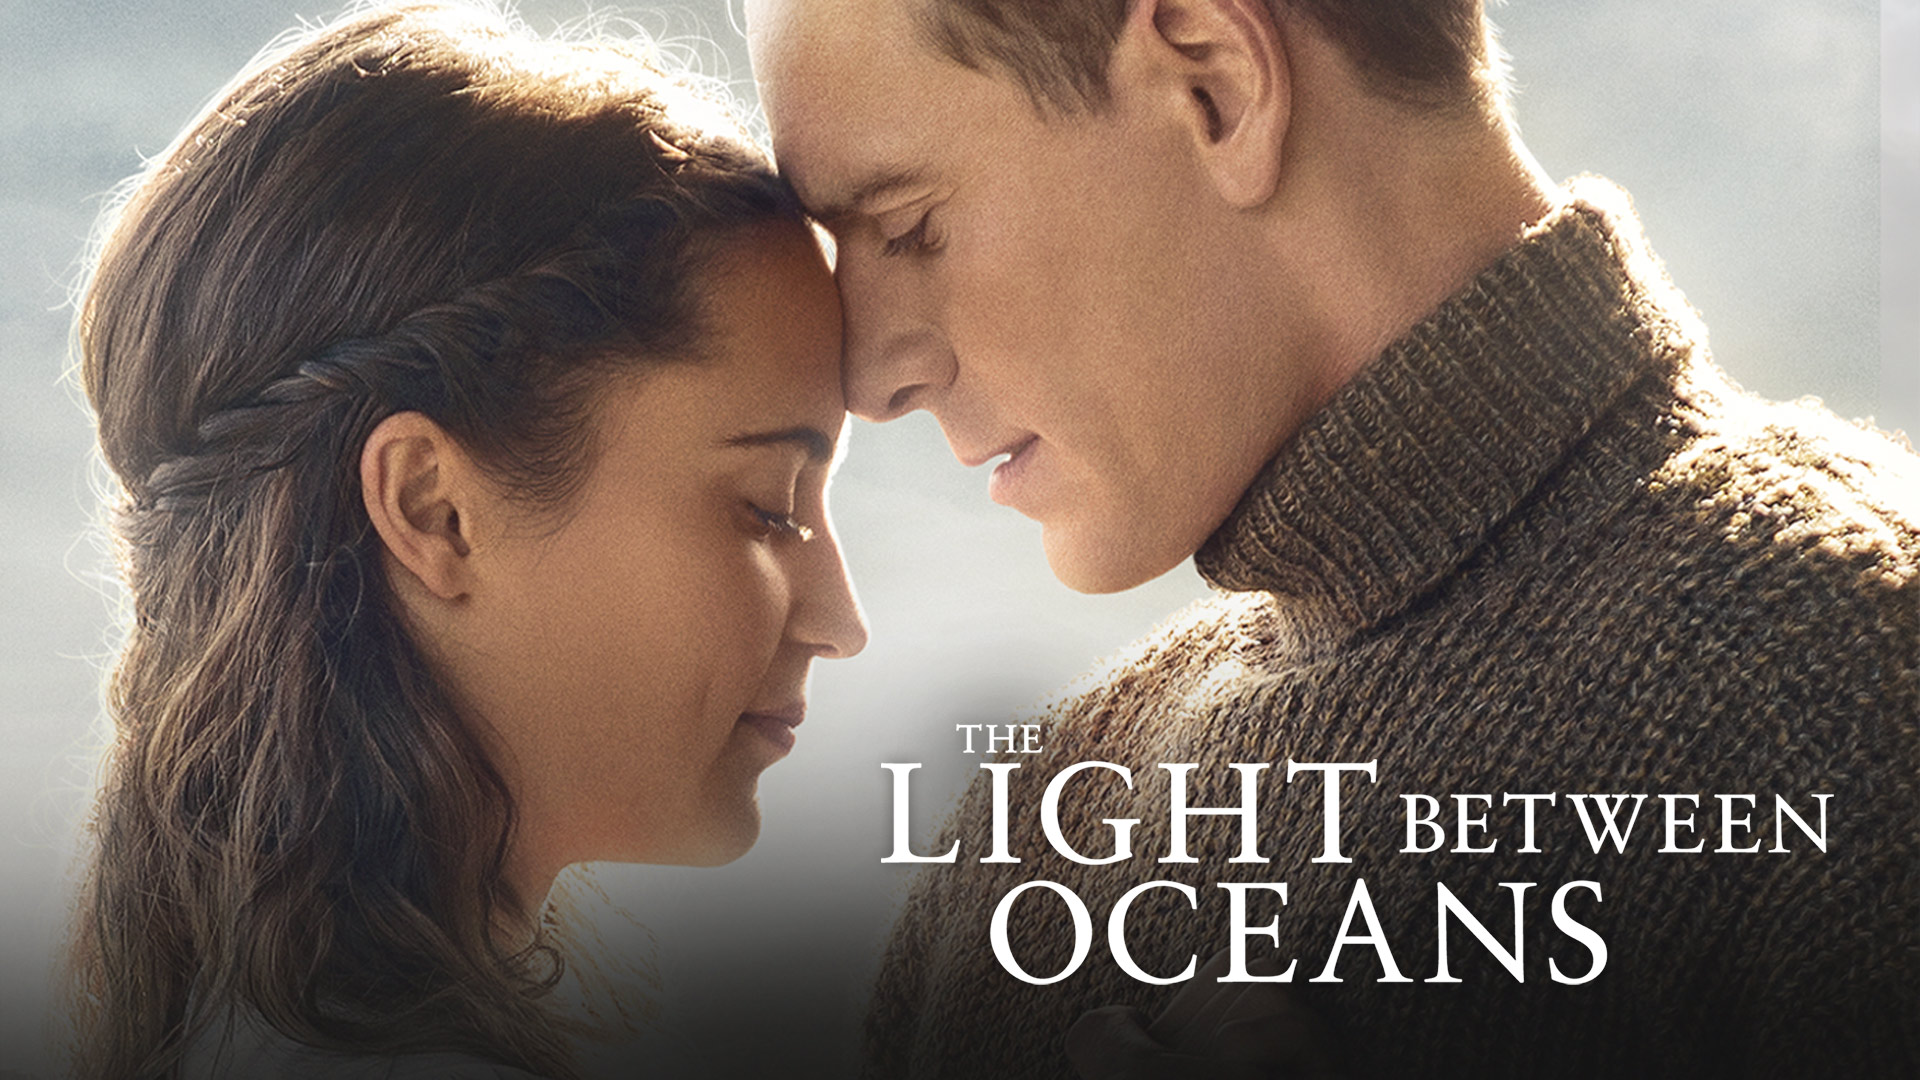 The Light Between Oceans (Theatrical Version)